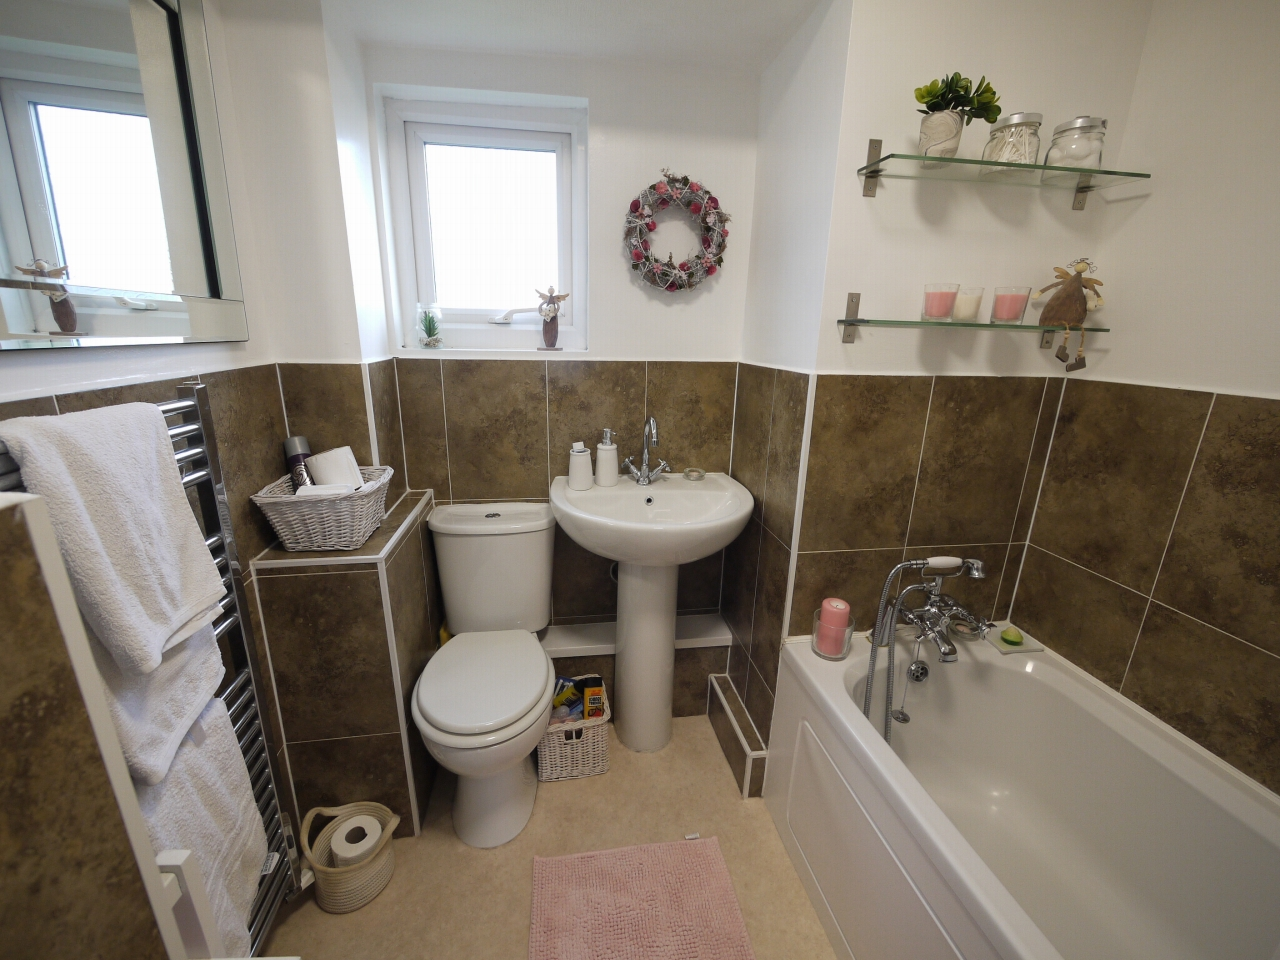 4 bedroom detached house For Sale in Brighouse - Photograph 16.